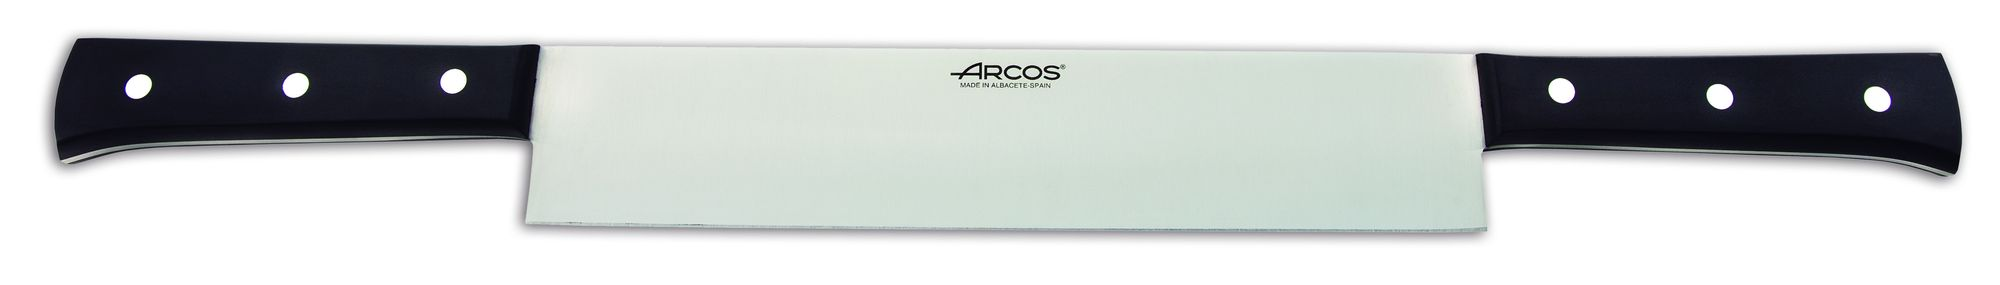 Cheese Knife Arcos ref.: 792300